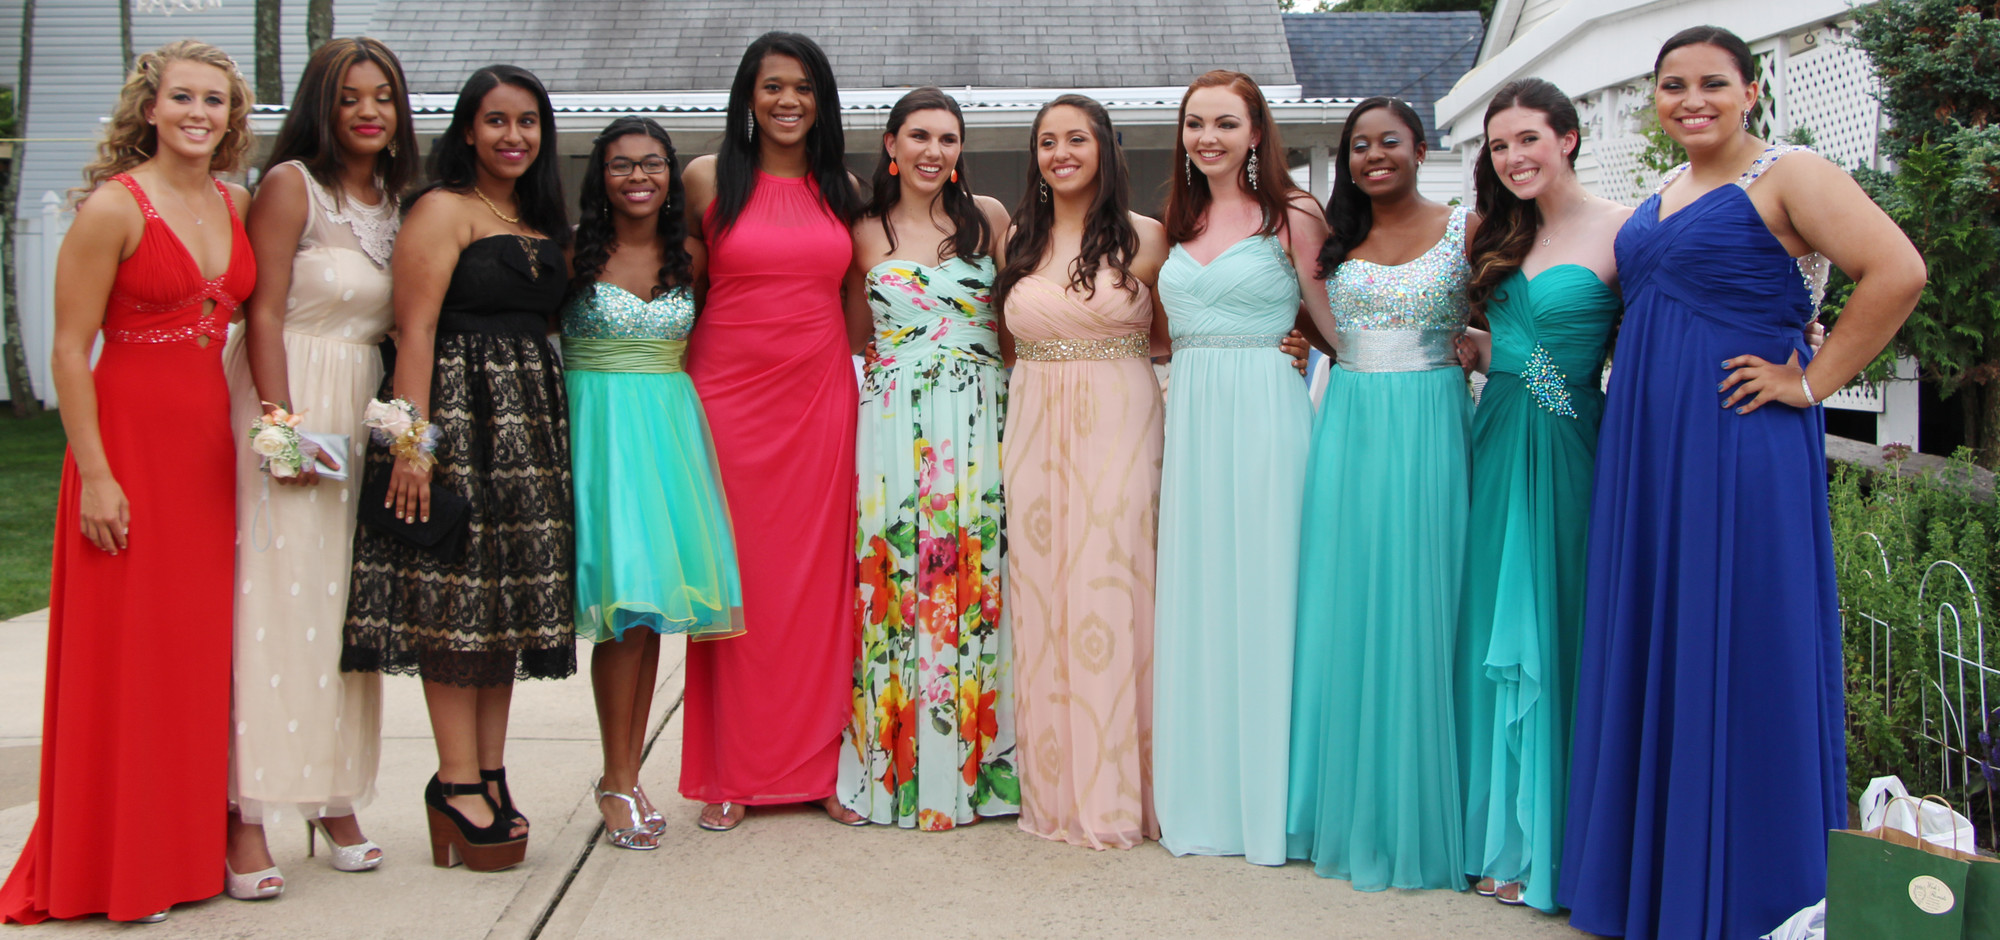 The girls from Baldwin High School were ready to party at their prom at The Sands Atlantic Beach on June 26. From left were Marie Lucas, Megan Delatour, Meron Sabatu, Kiera Hyacinthe, Valerie Achille, Natalia Barr, Hannah Marrero, Raeltin Clavin, Ashley Johnson, Kirsten Bruck and Rachel Clark.